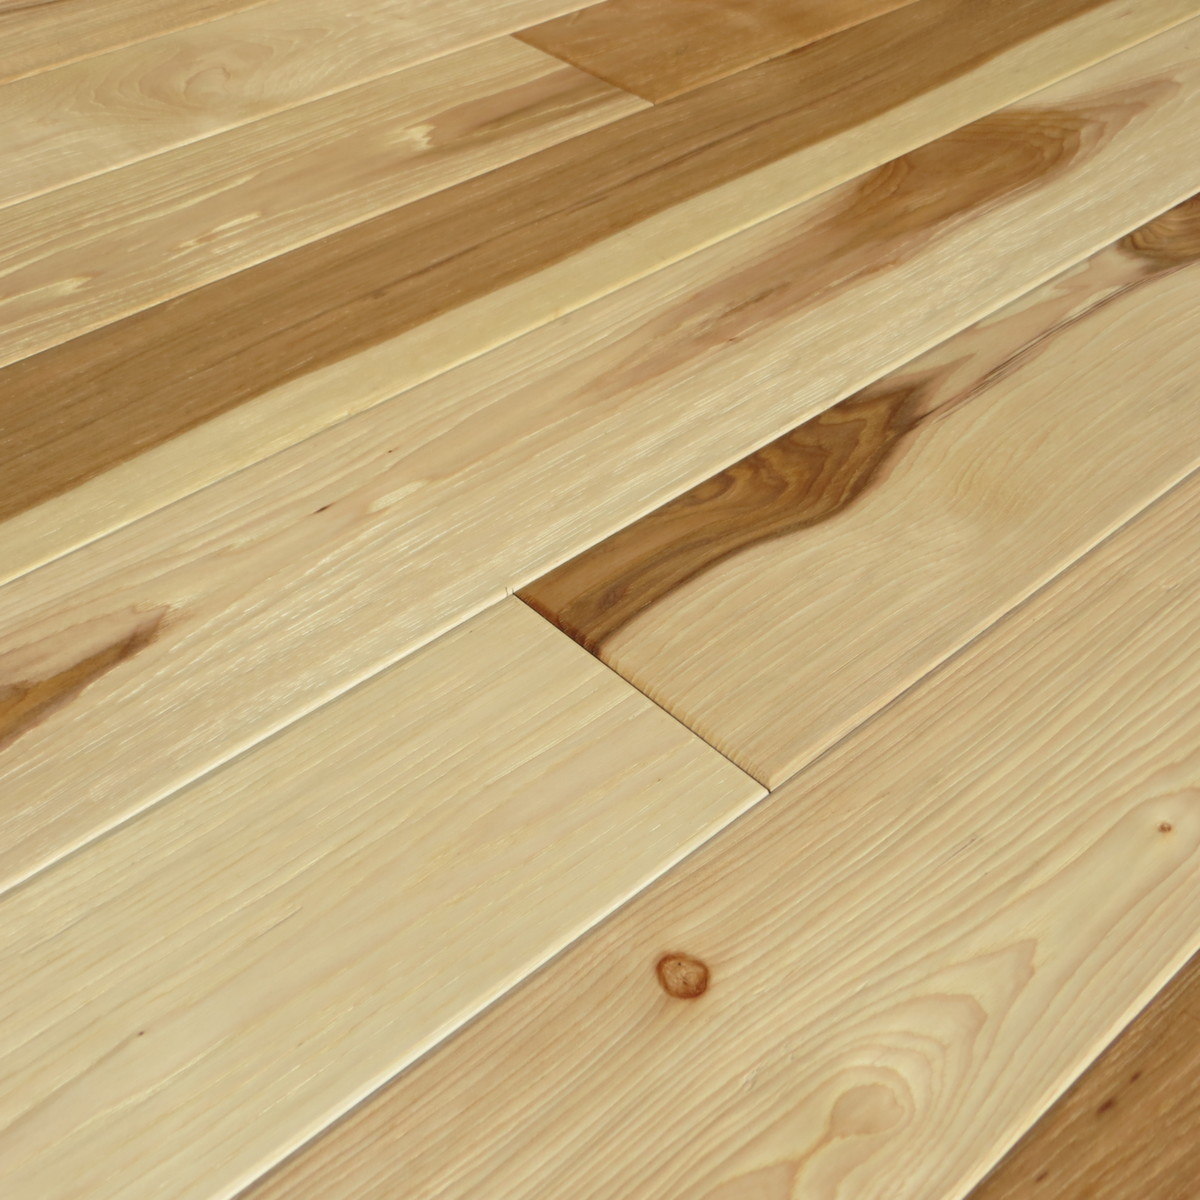 Wood Flooring Product : Millennium hickory oiled hand scraped hardwood flooring